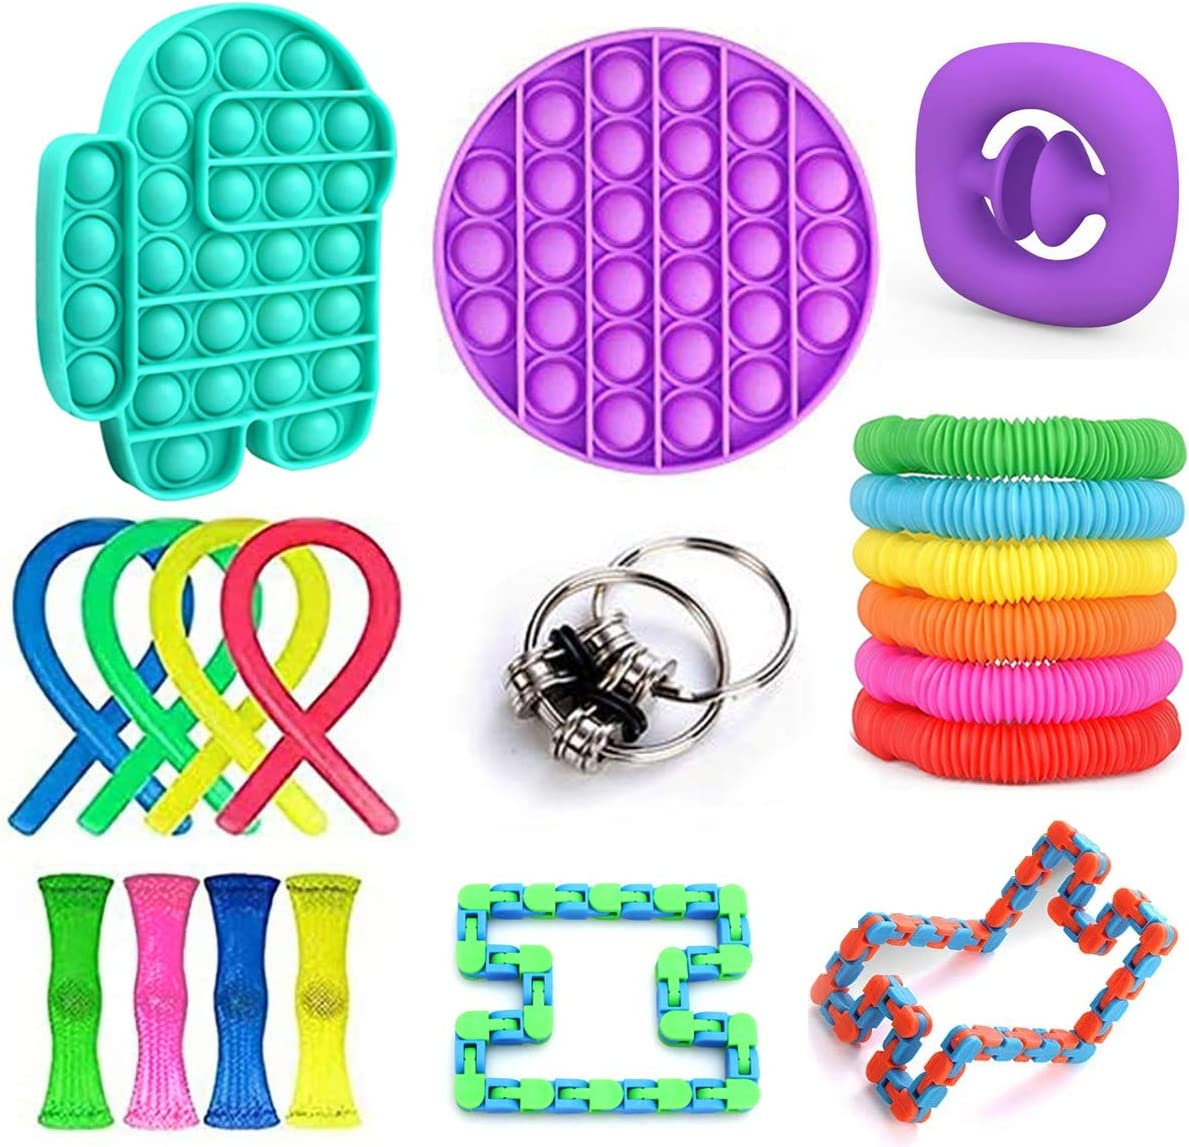 20 Pack Fidget Toy Set Sensory Toys Stress /& Anti-Anxiety Relieving Fidget Toy Chain 20 Pcs Magic Cube Infinity Cube Toy /& More with Simple Dimple /& Pop-Its Toy for Kids /& Adults